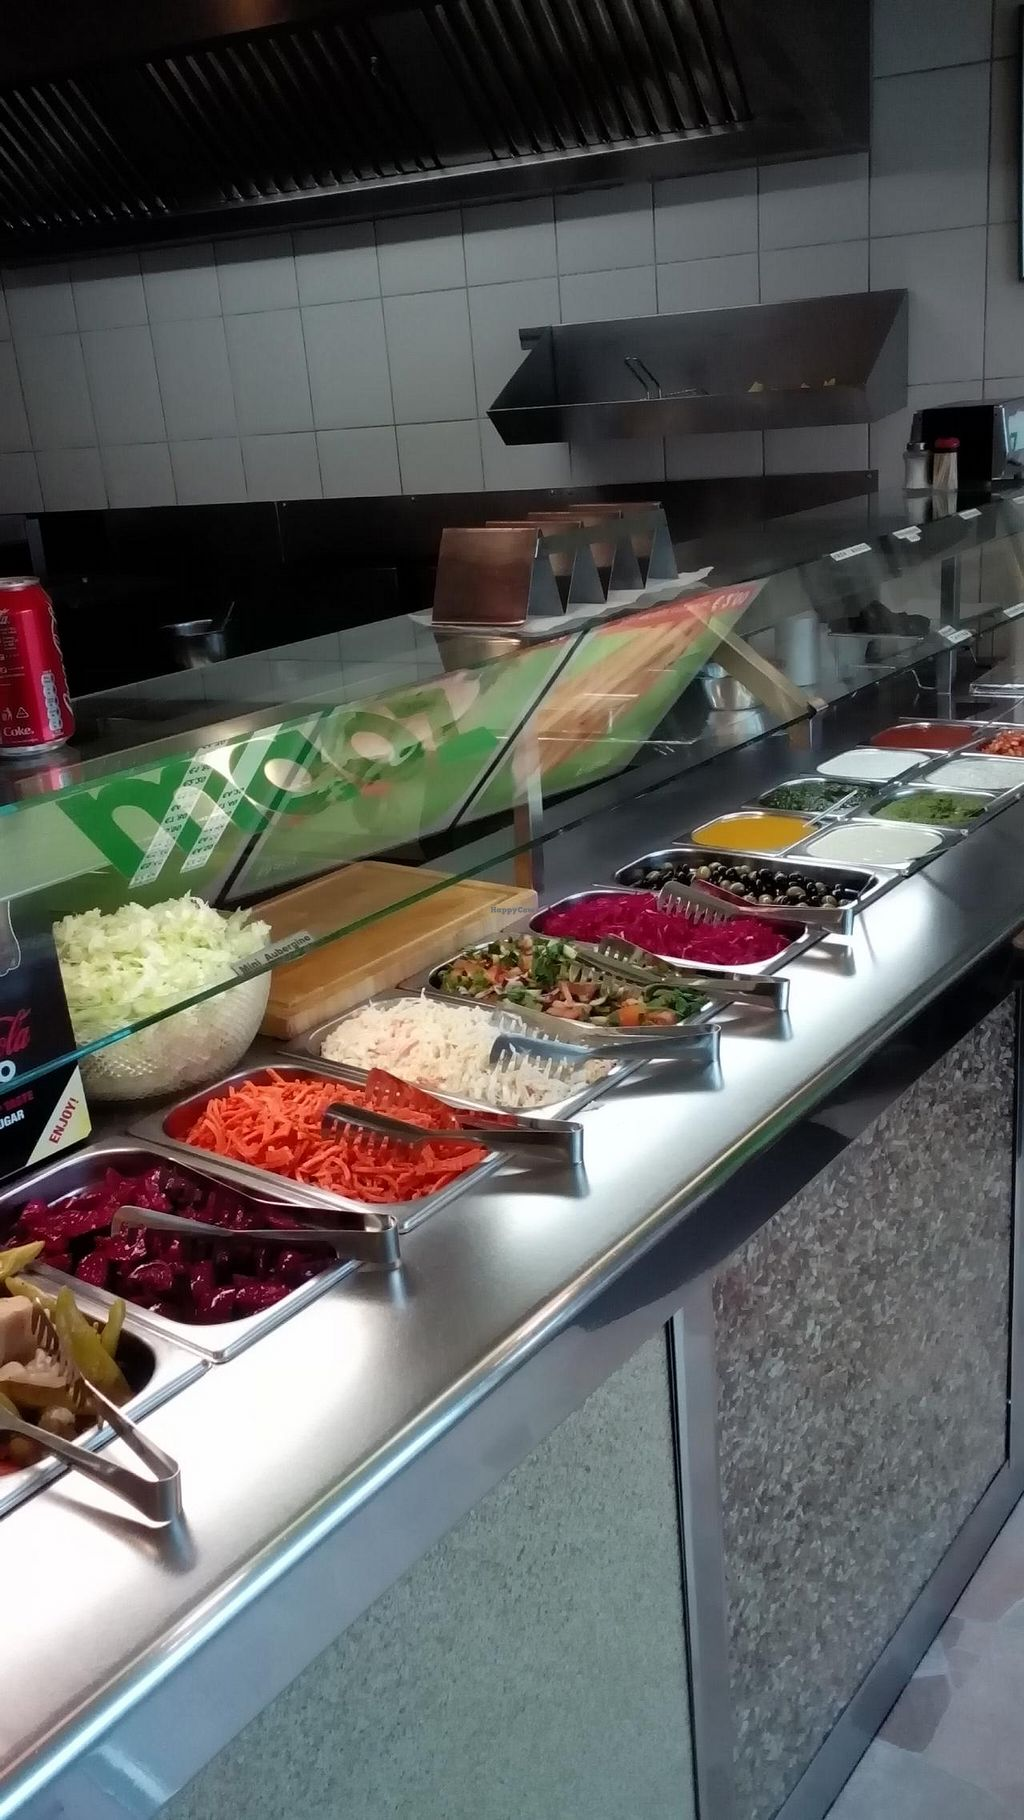 """Photo of Maoz Vegetarian  by <a href=""""/members/profile/Yilla"""">Yilla</a> <br/>veggie bar <br/> February 7, 2015  - <a href='/contact/abuse/image/36089/92464'>Report</a>"""